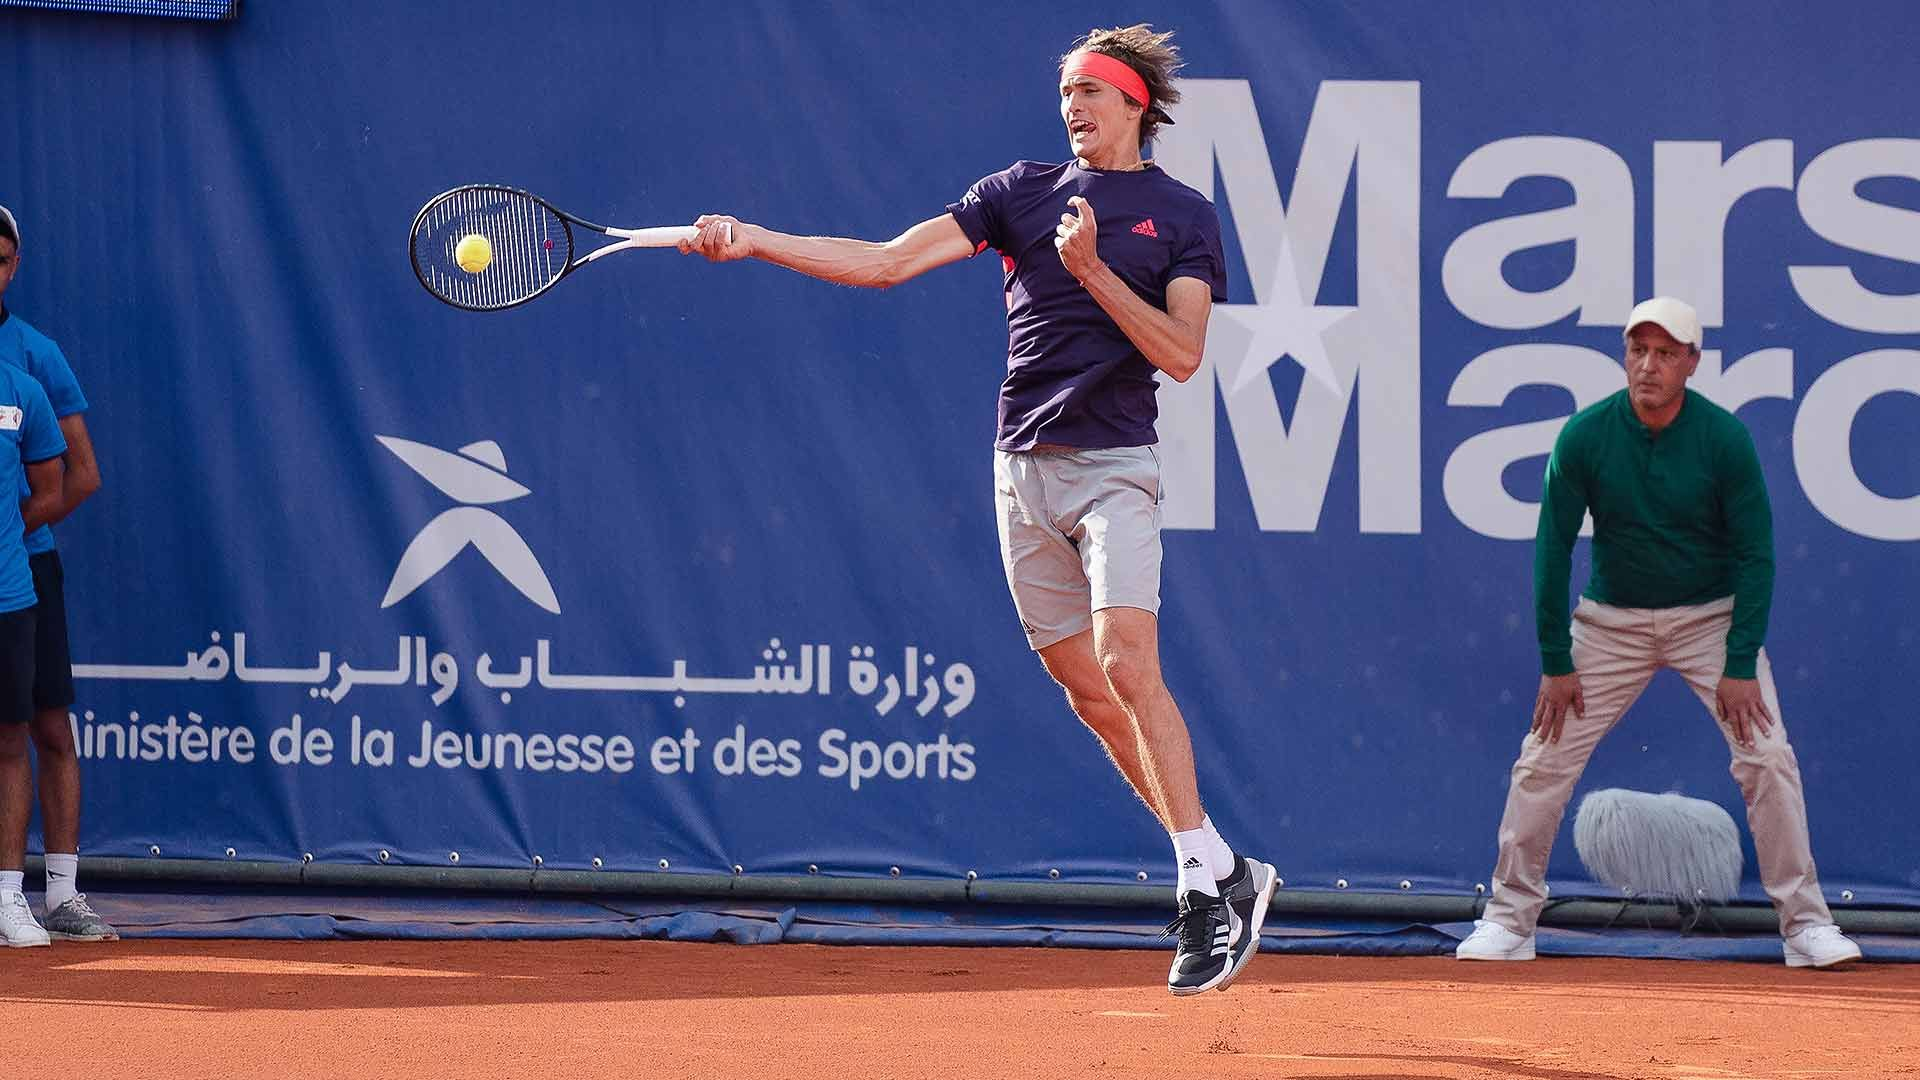 Top Seed And World No 3 Alexander Zverev Started His Clay Court Swing With A Convincing 6 4 6 4 Win Against Denis Isto Fernando Verdasco Marrakech Grand Prix